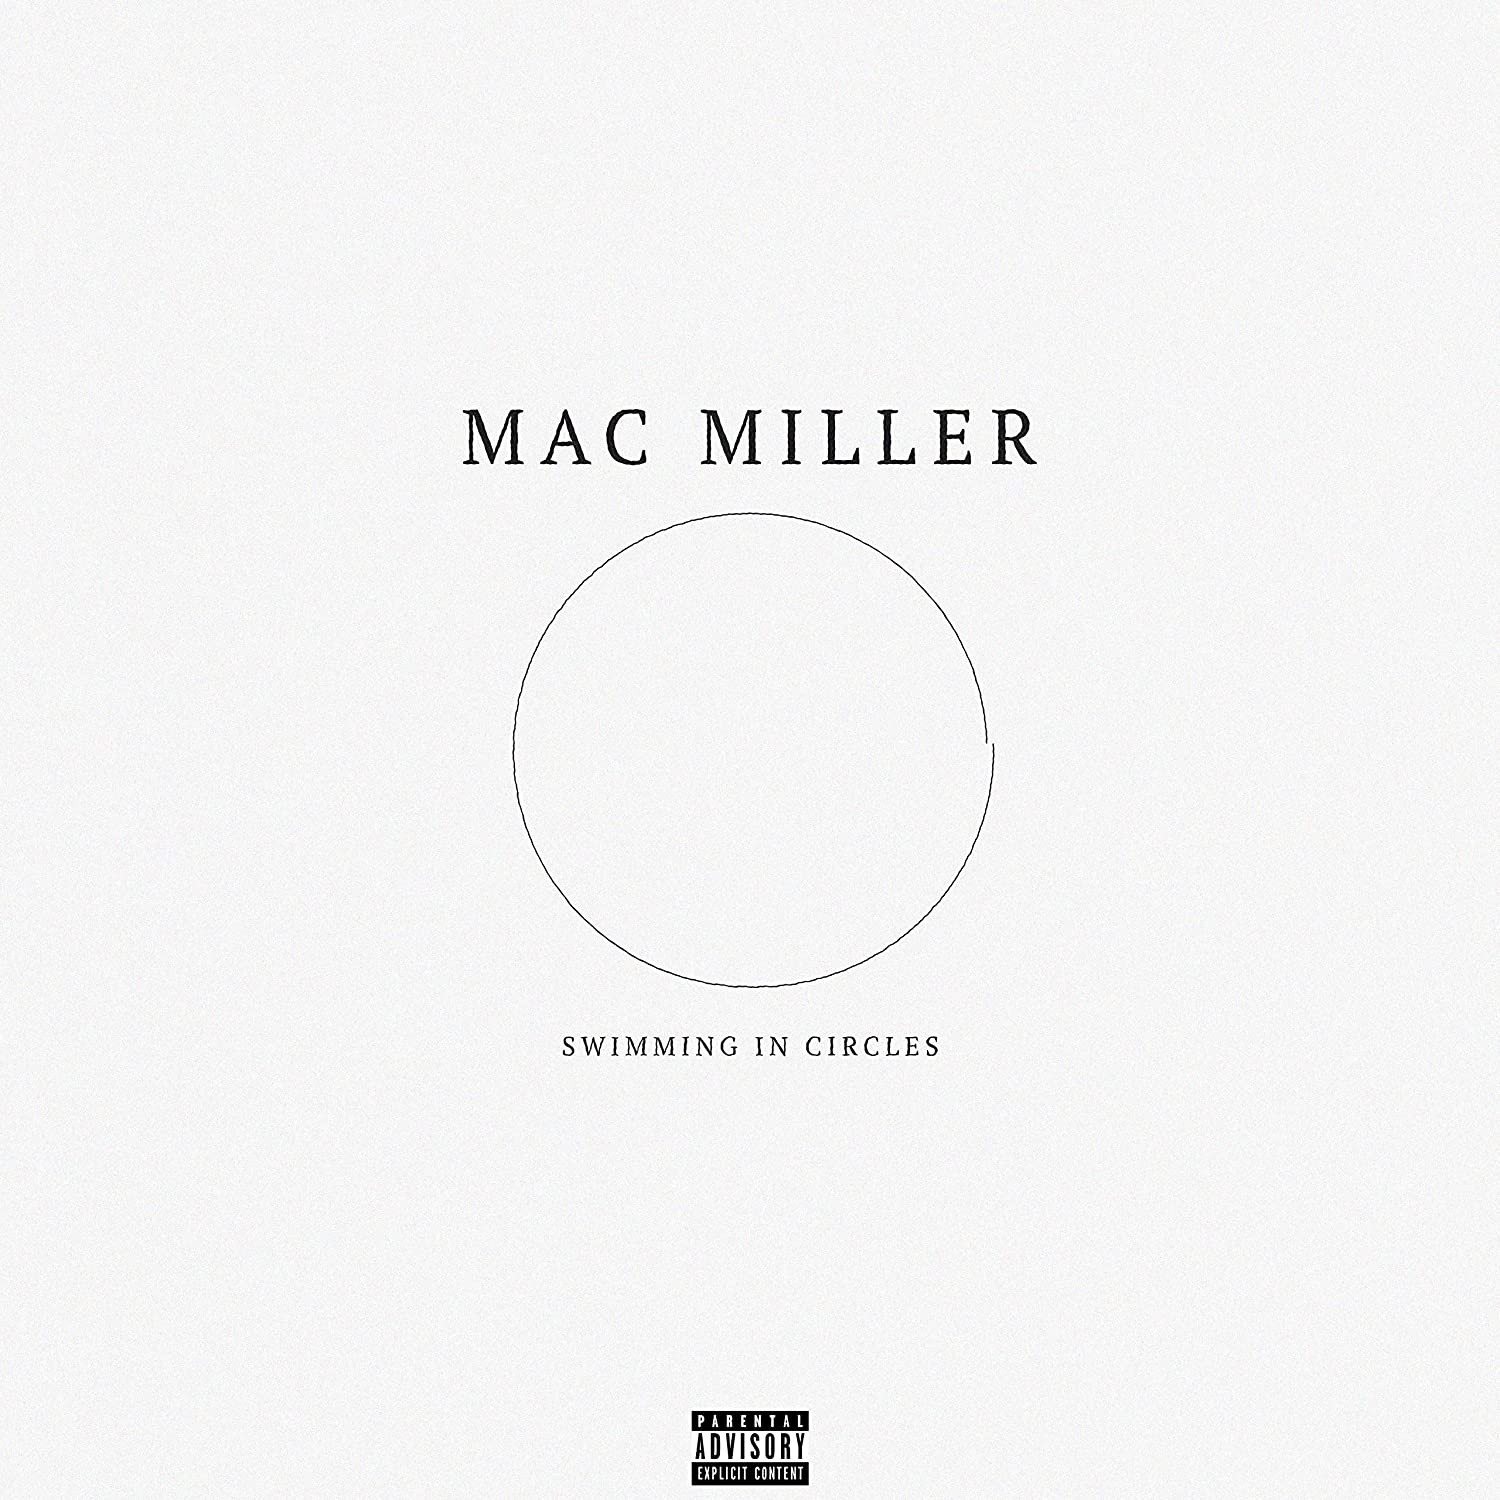 Mac Miller - Swimming in Circles